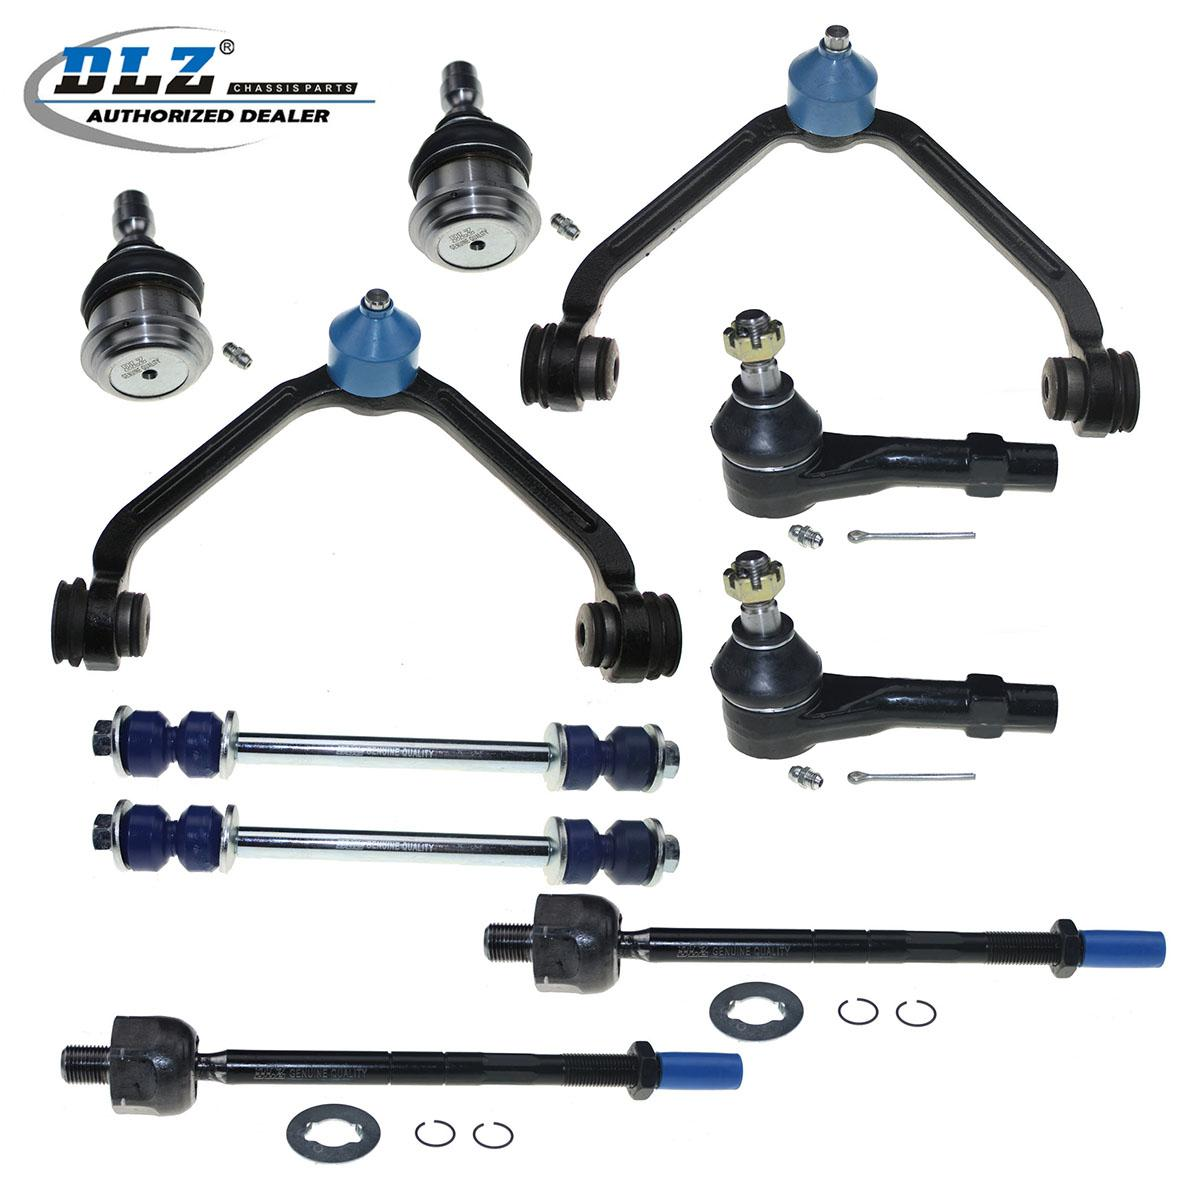 2001 Mazda B Series Cab Plus Suspension: 10x New Front For 1998-2011 Ford Ranger Suspension Kit